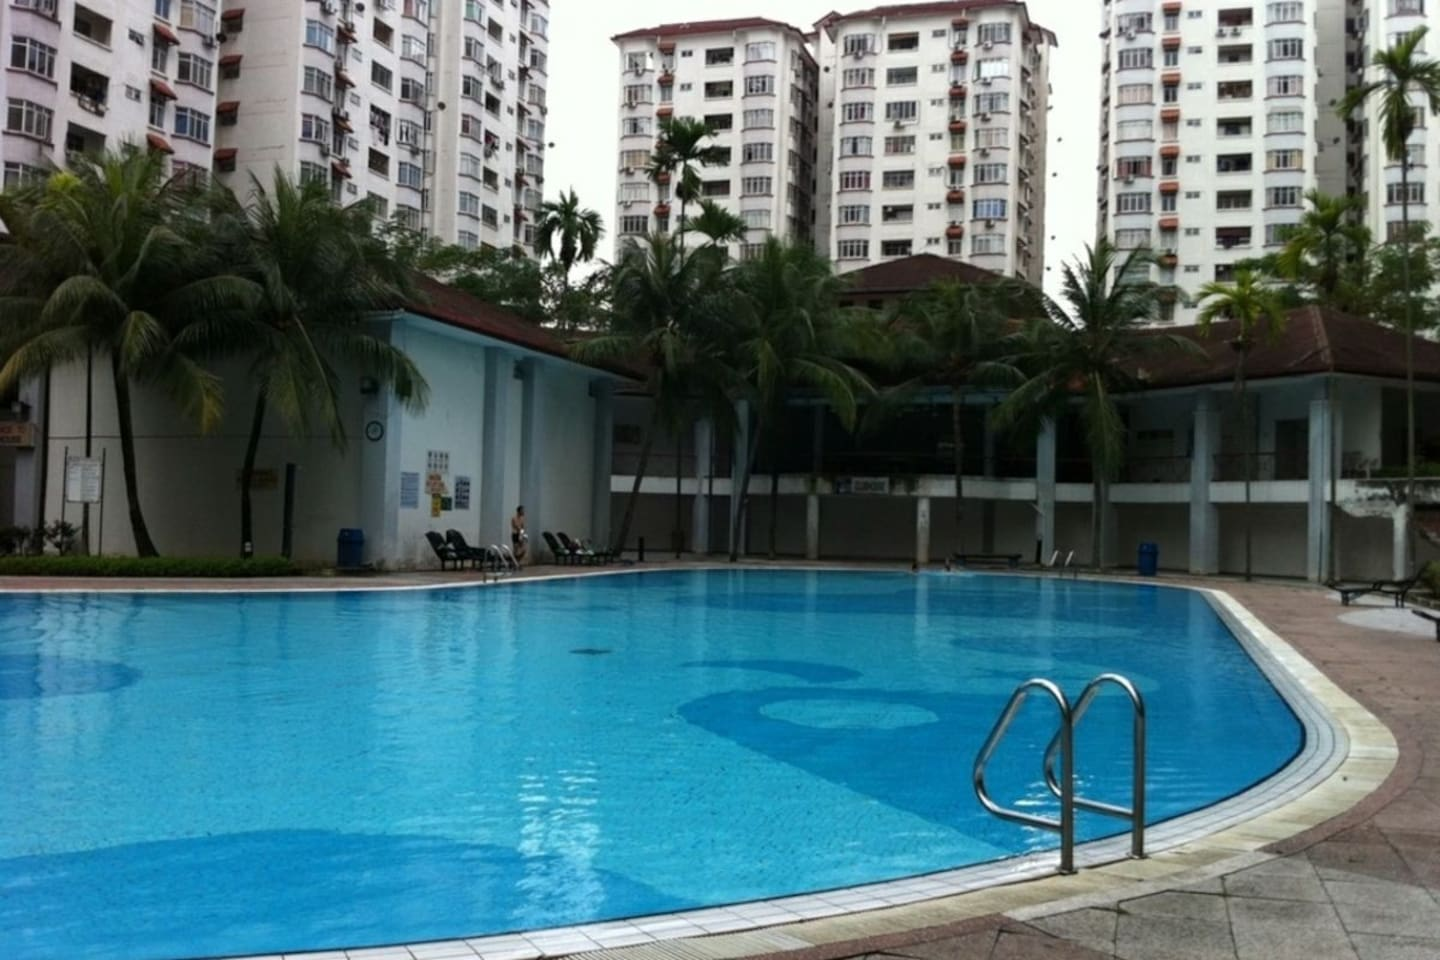 A good size swimming pool.